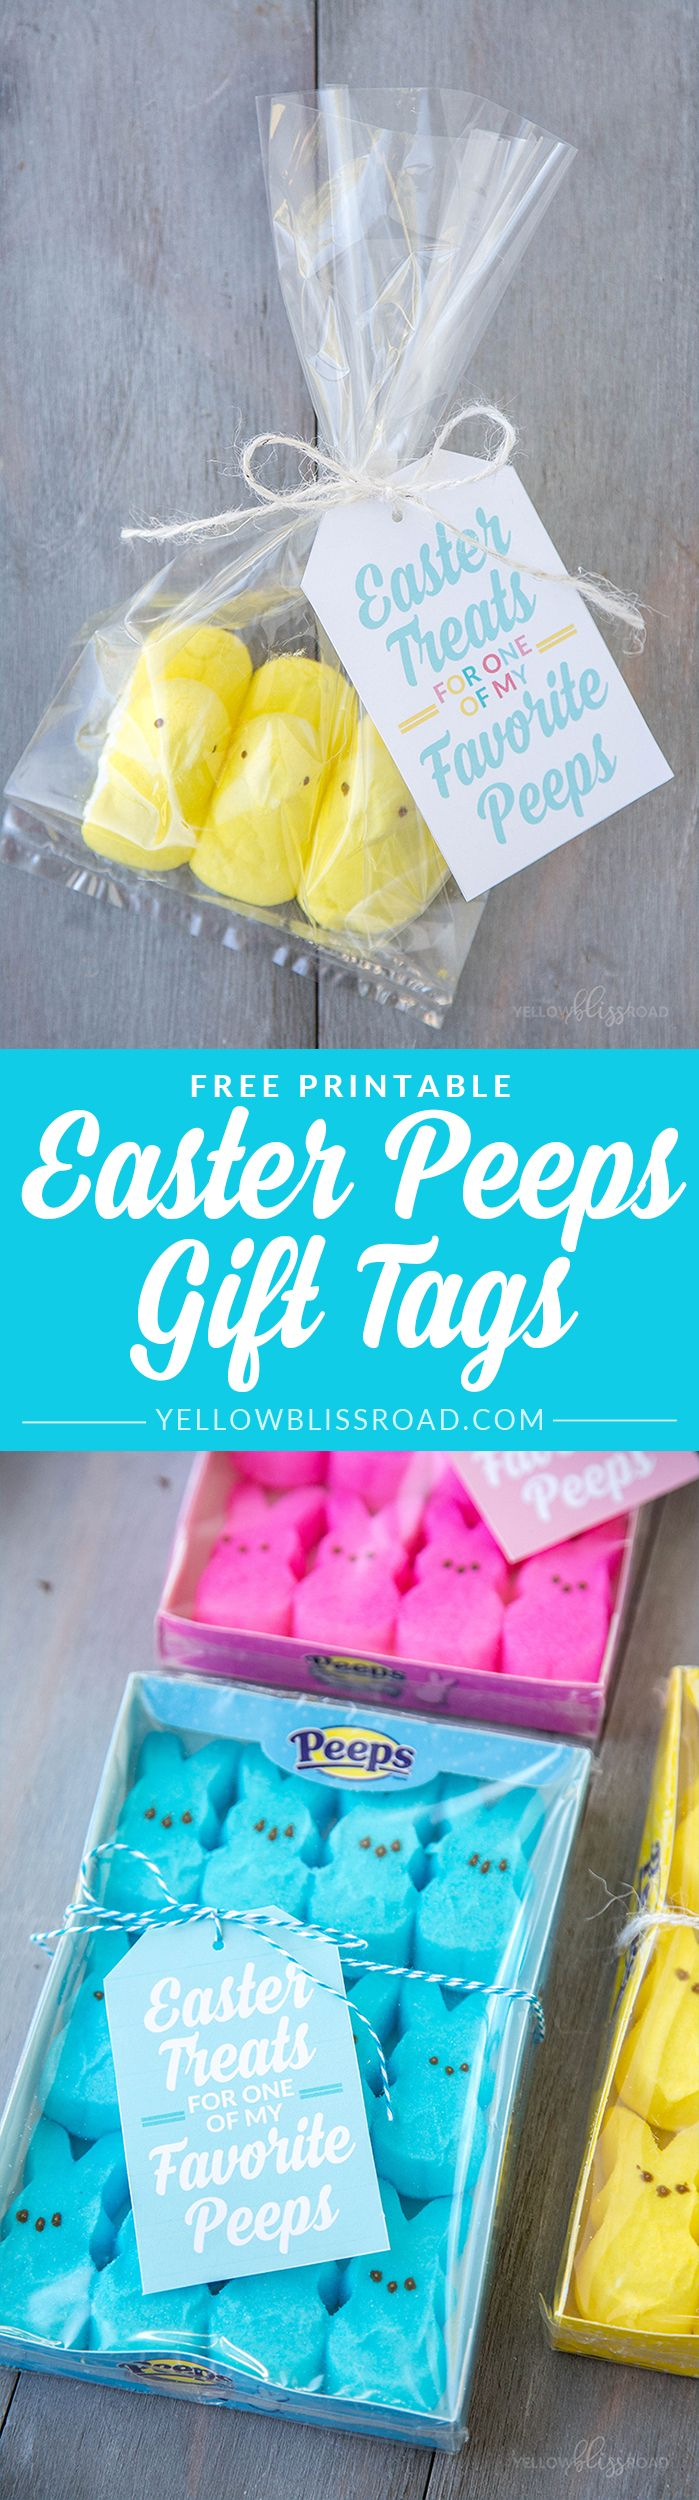 Best 25 diy easter gifts for friends ideas on pinterest diy free printable peeps gifts tags for easter cute classroom friends or neighbor easter gifts negle Choice Image